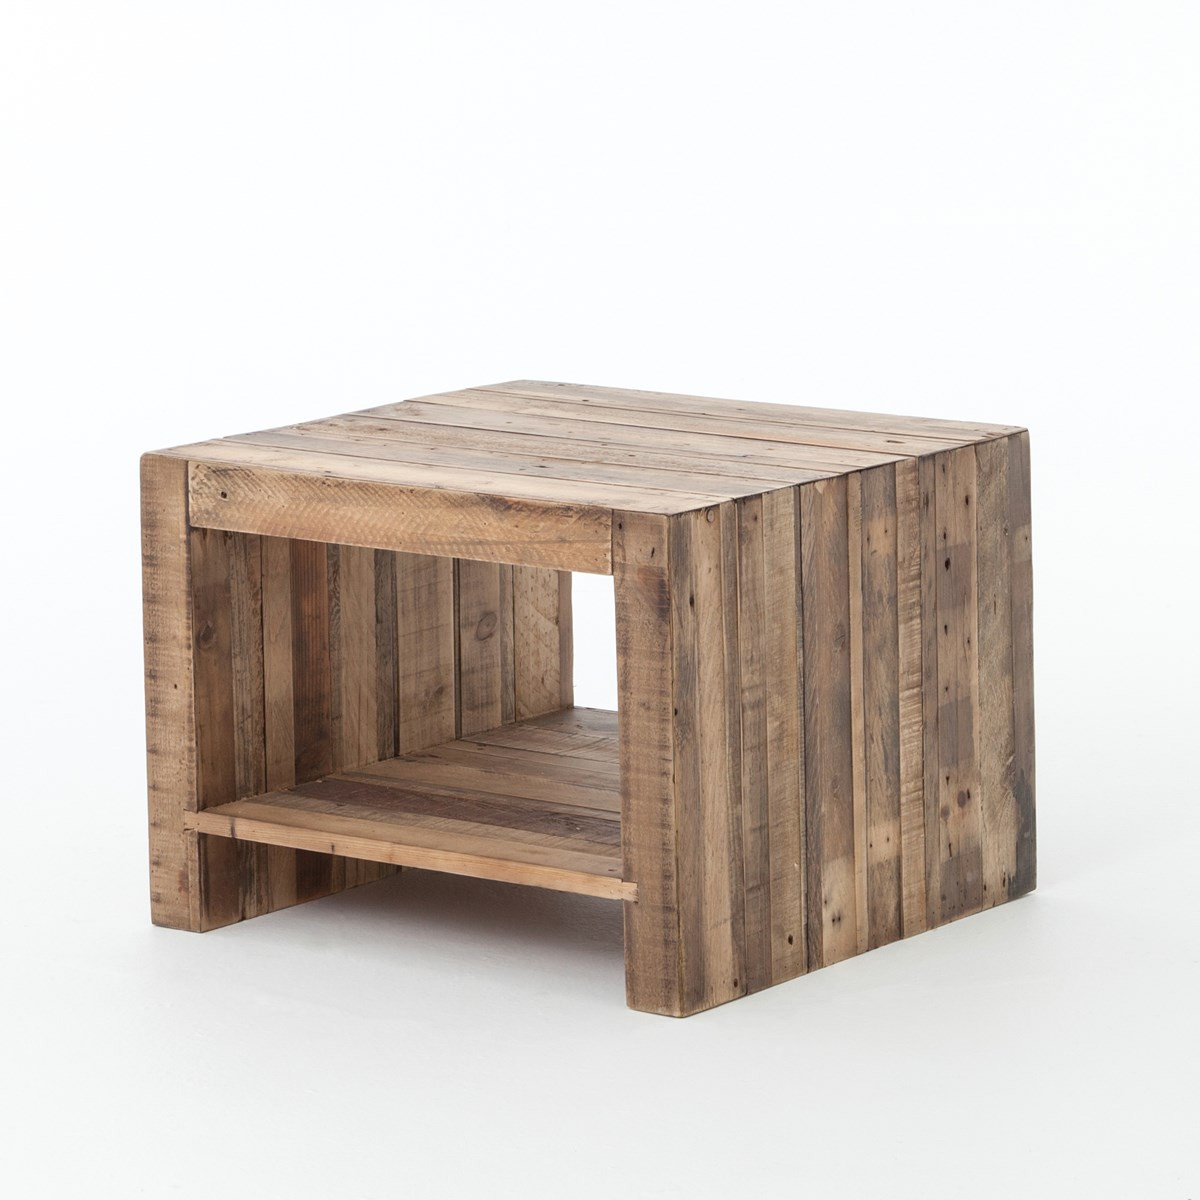 angora reclaimed wood square end table  zin home - angora reclaimed wood square end table